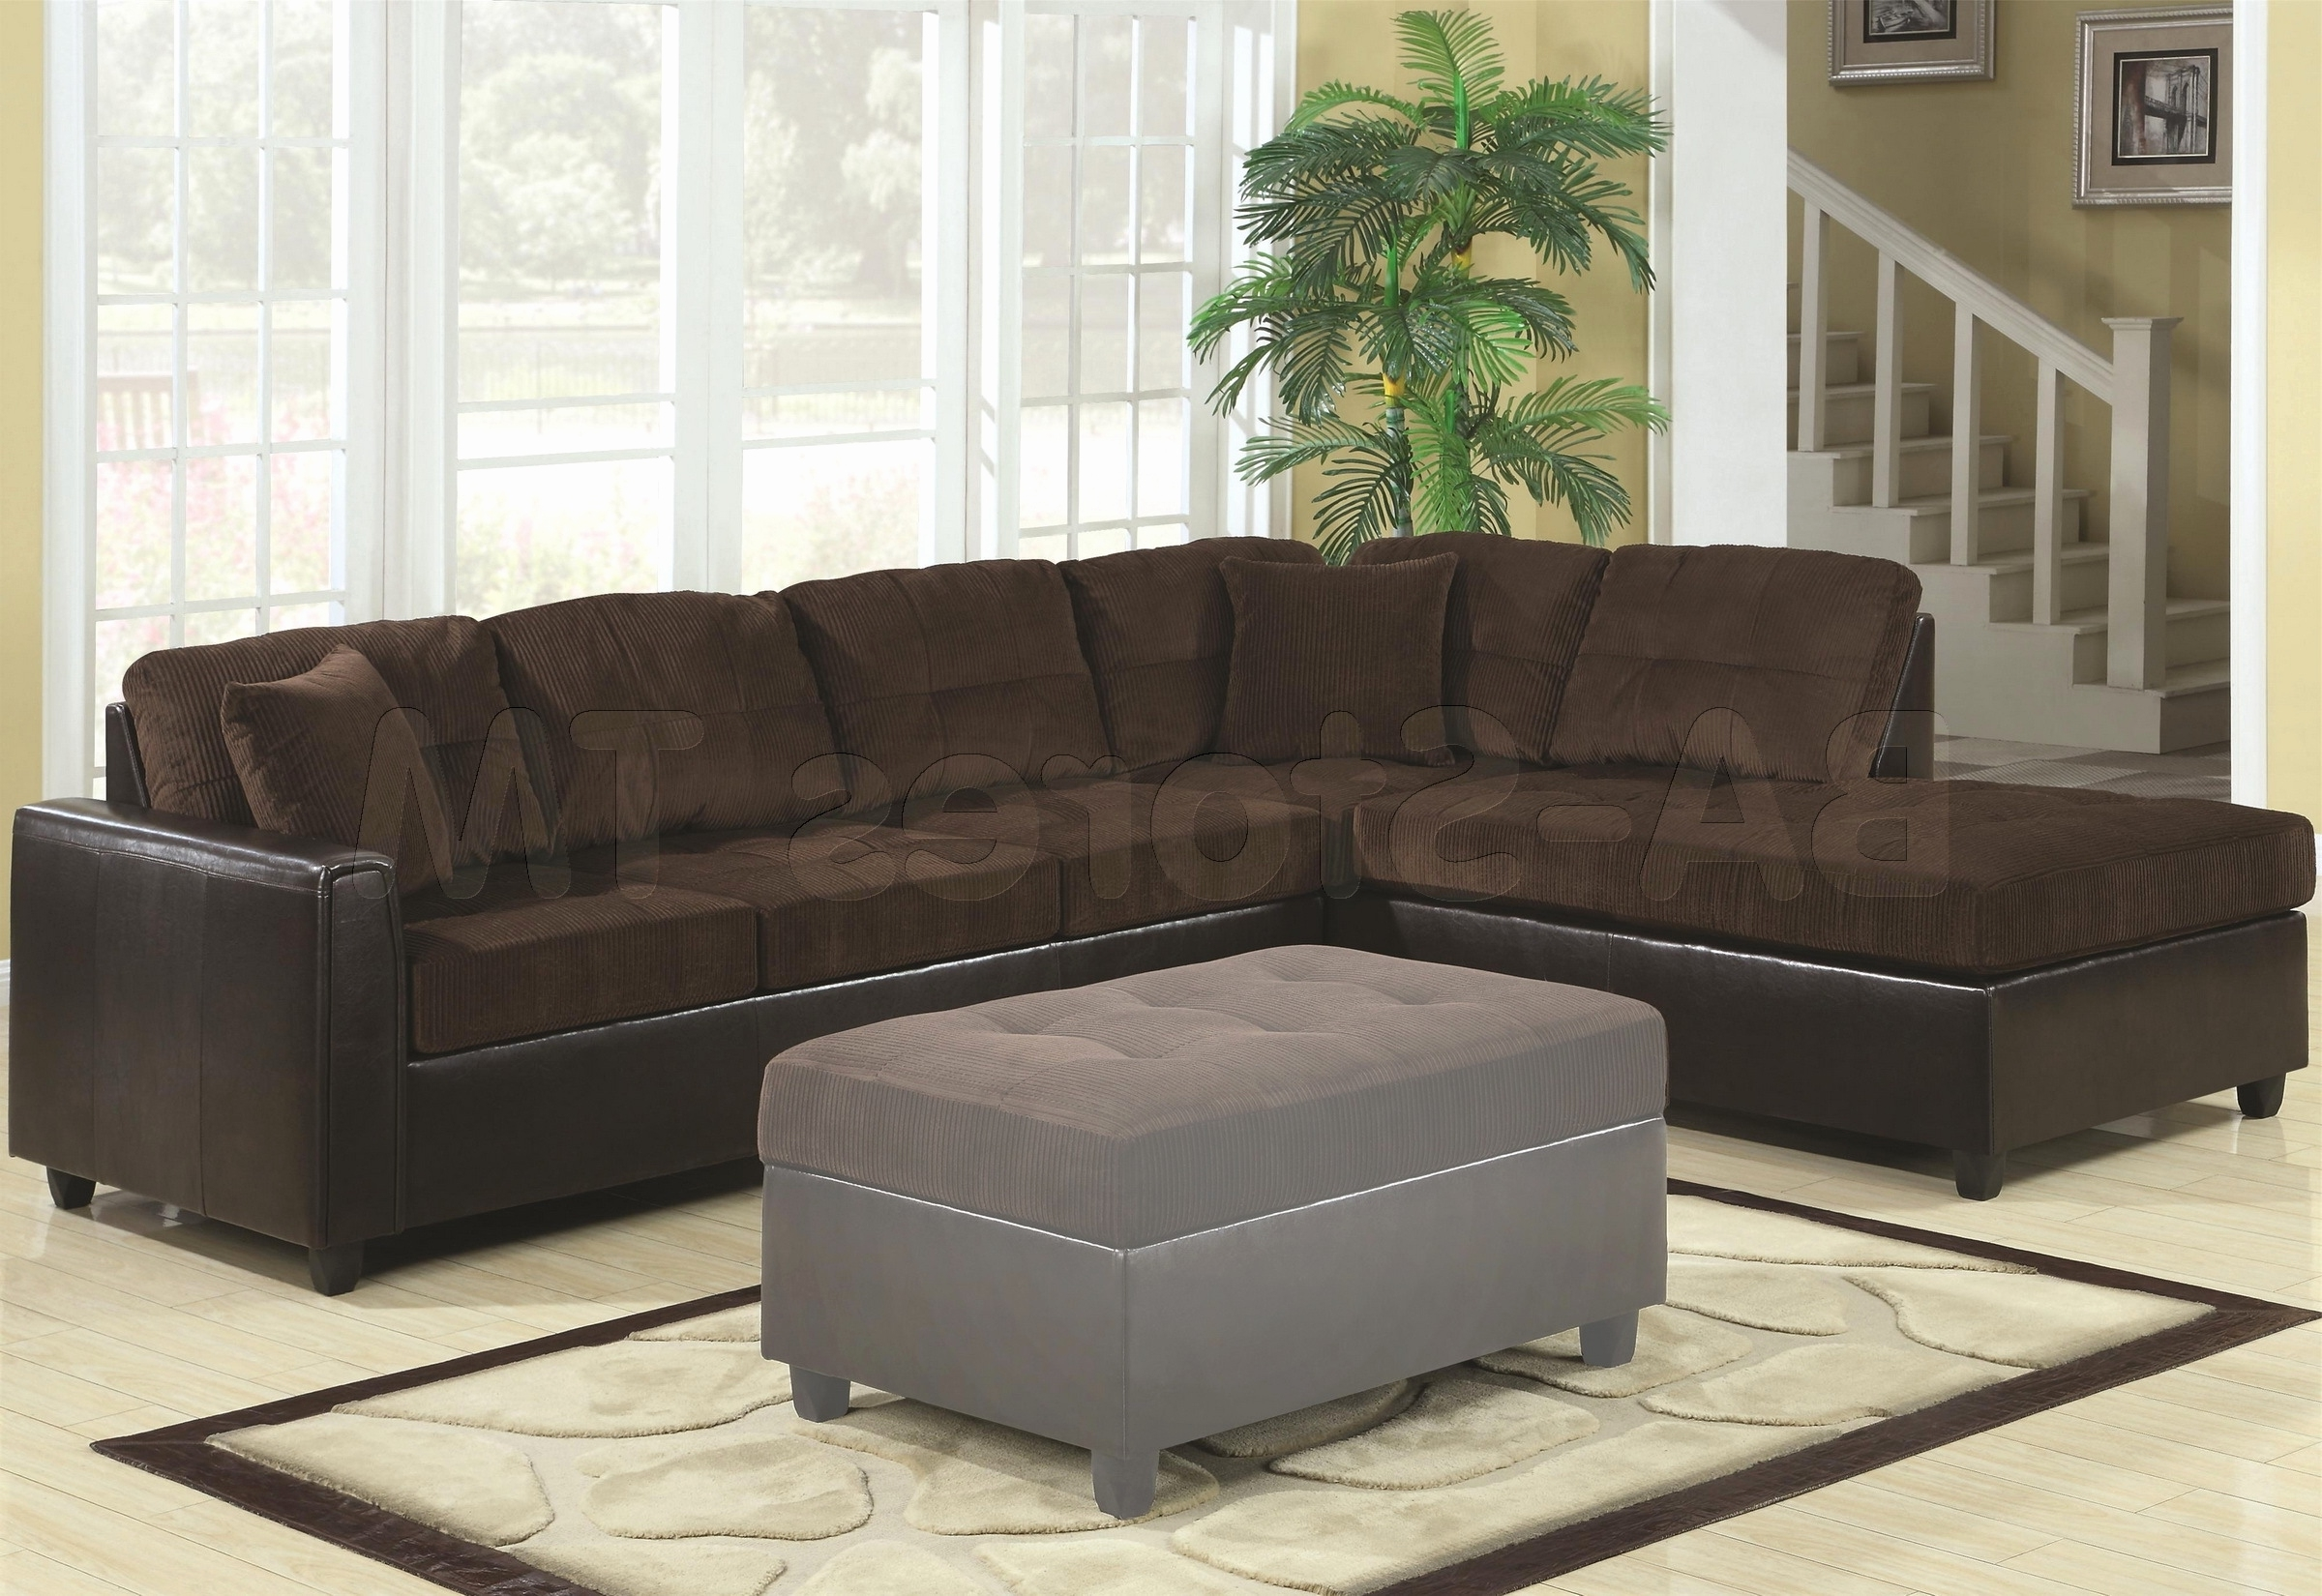 Well Known Sectional Sofas At Ebay Within Fresh Sectional Sofa Beds For Small Spaces 2018 – Couches And (View 6 of 20)